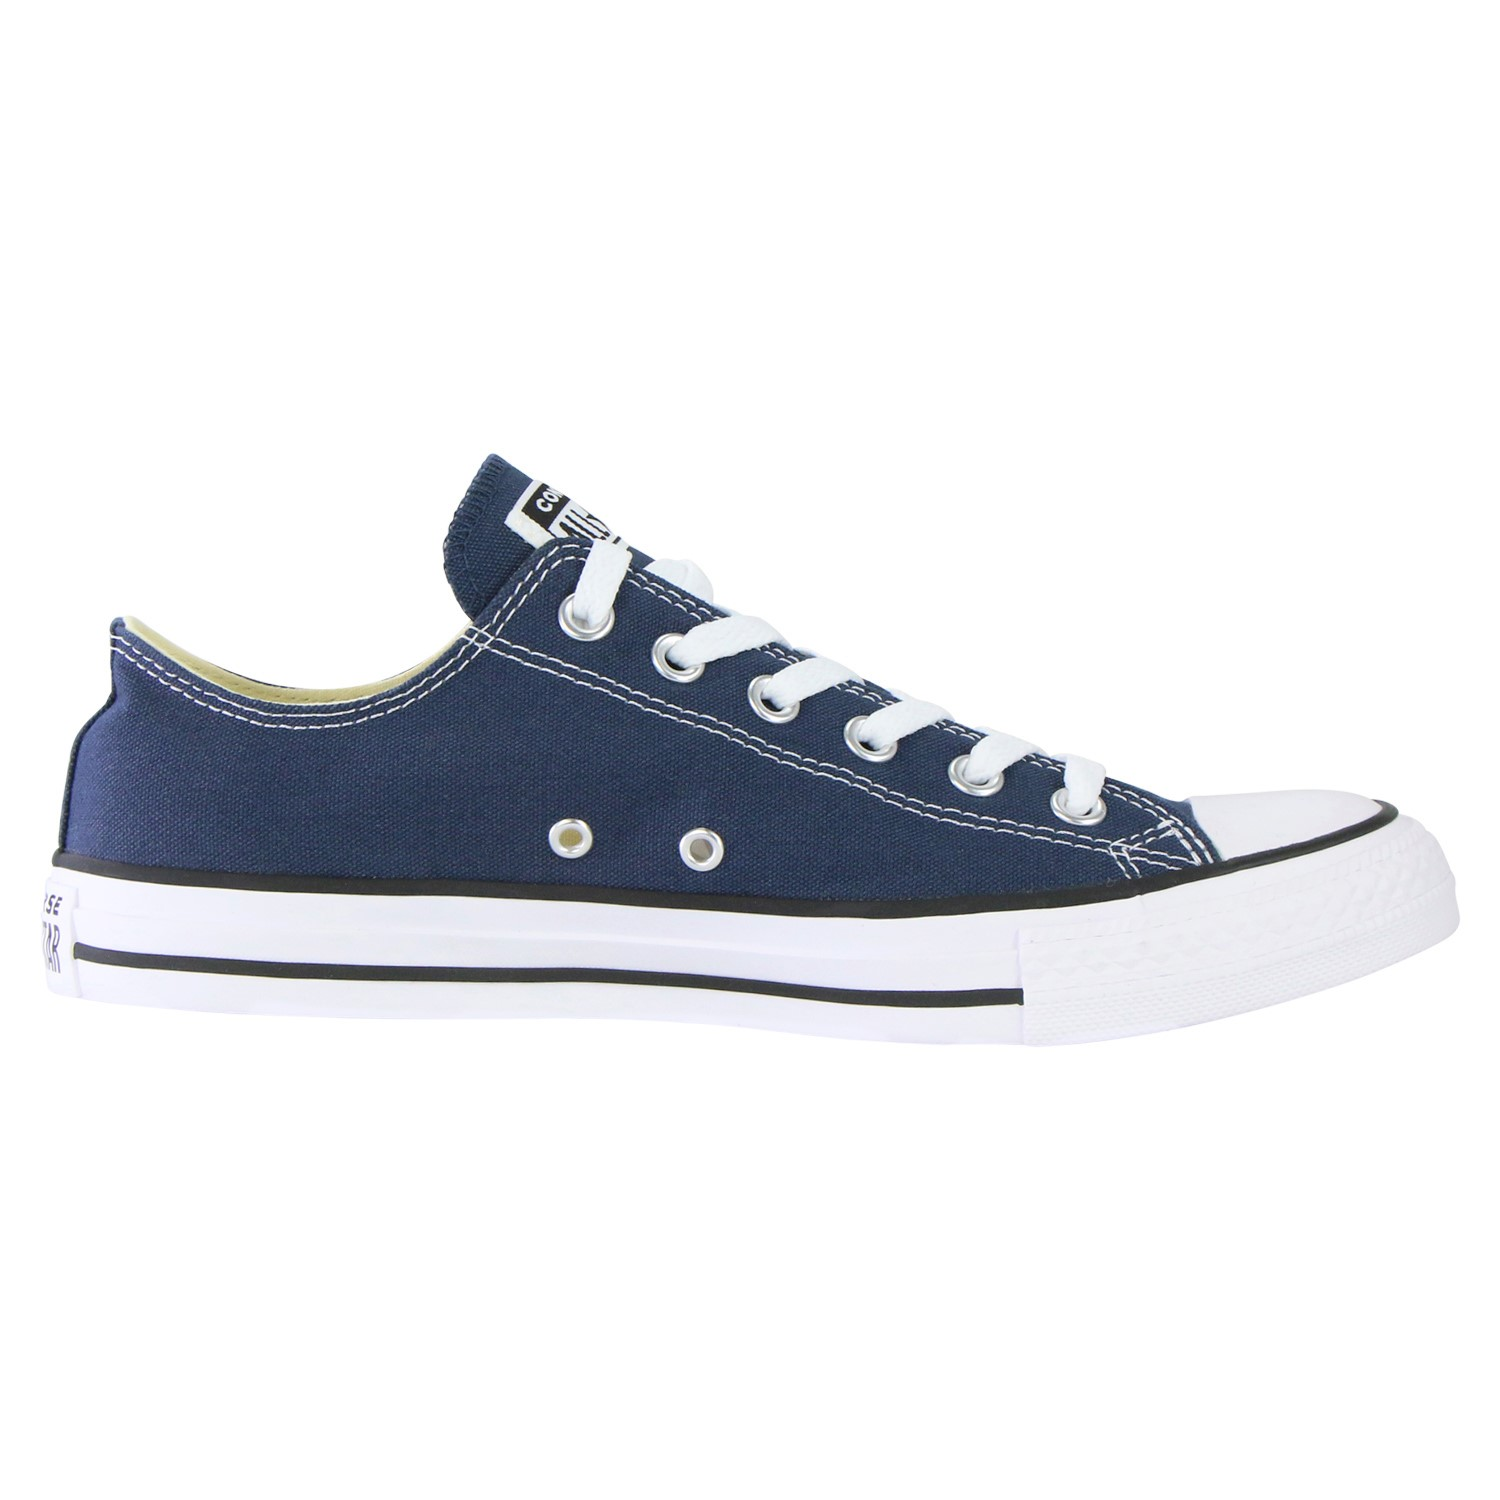 converse chucks all star ox m9697c navy canvas schuhe. Black Bedroom Furniture Sets. Home Design Ideas